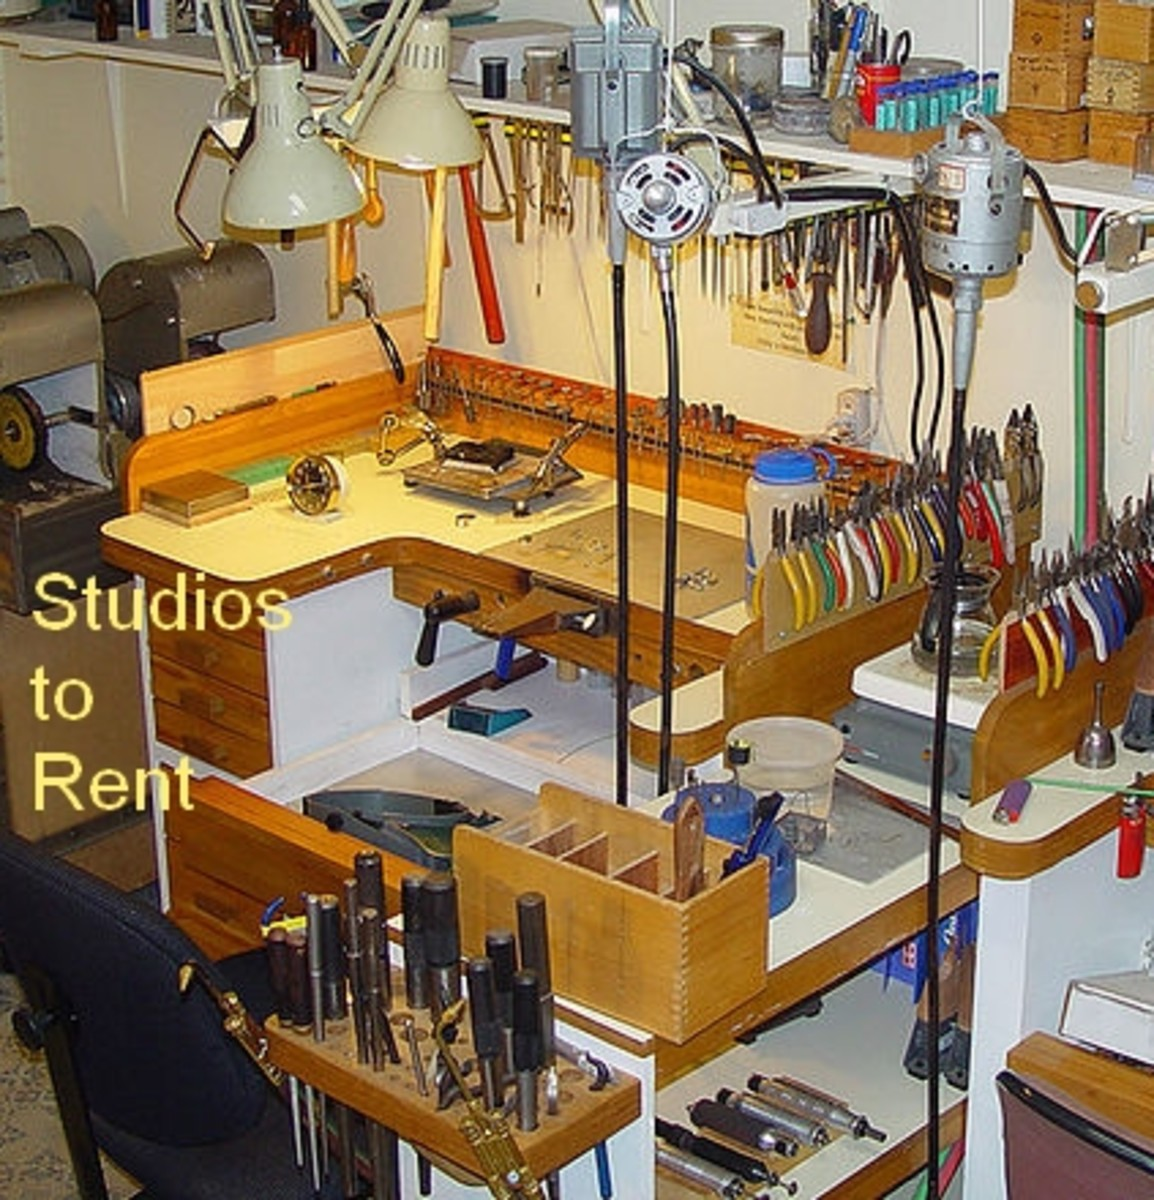 Jewellery Studio to Rent